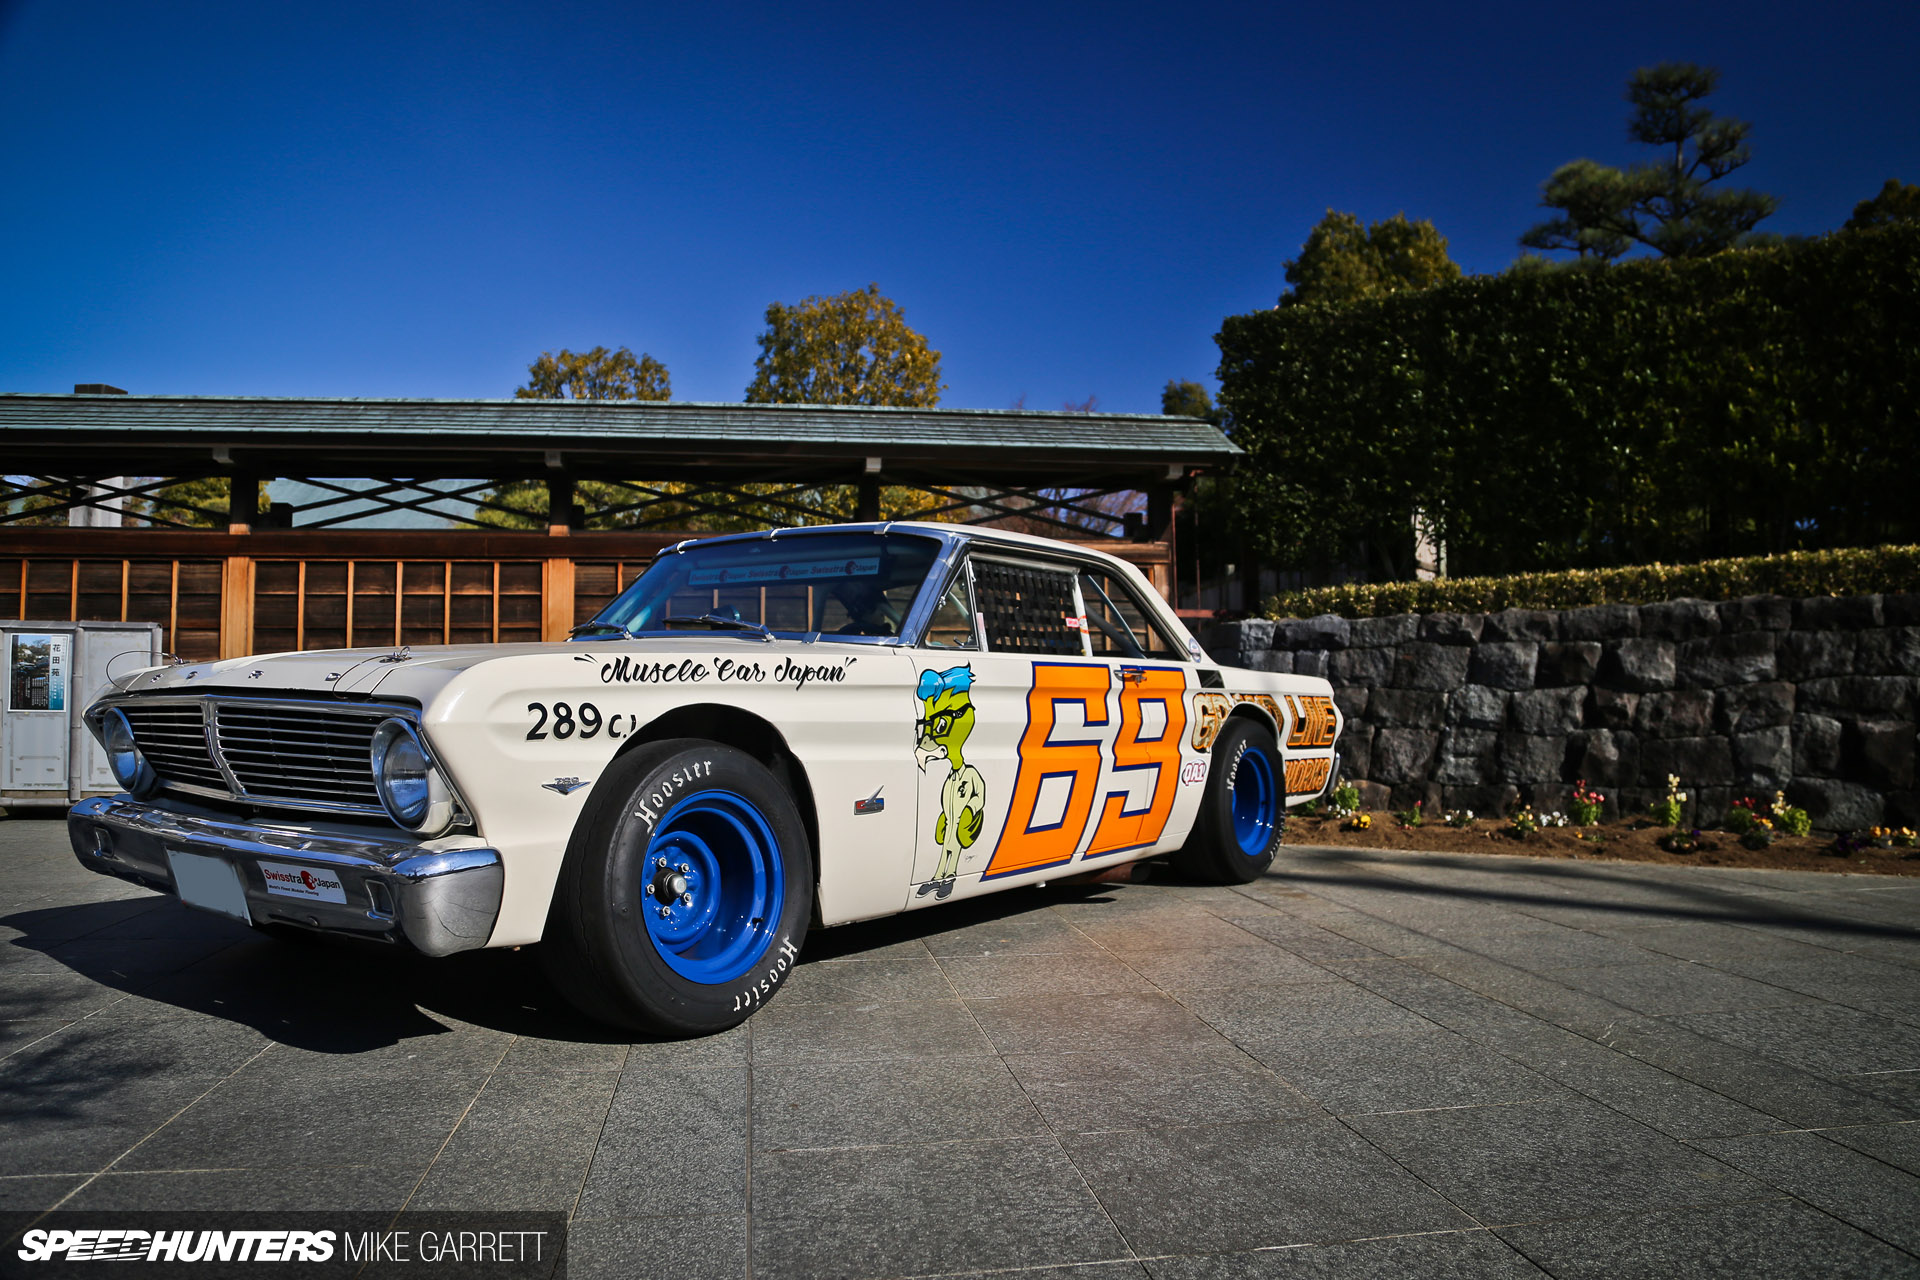 Hayabusa: The Samurai Of NASCAR - Speedhunters